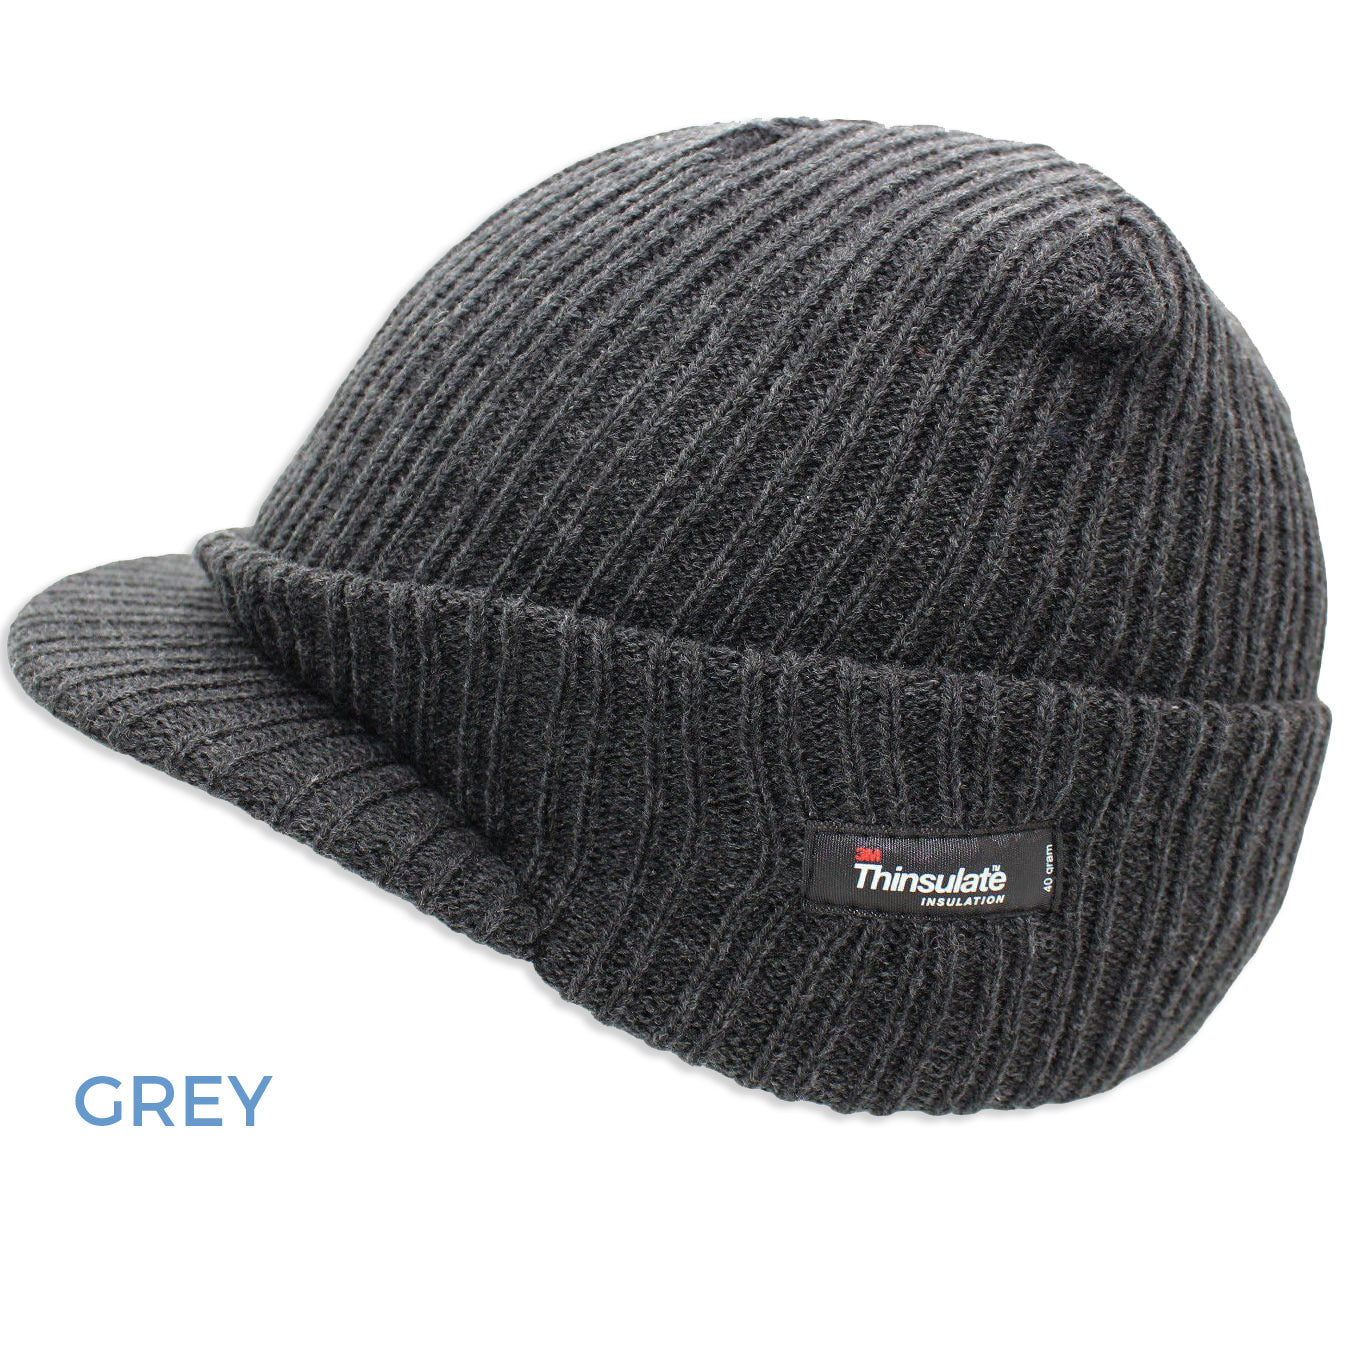 Grey Thinsulate Knitted Peaked Watch Cap